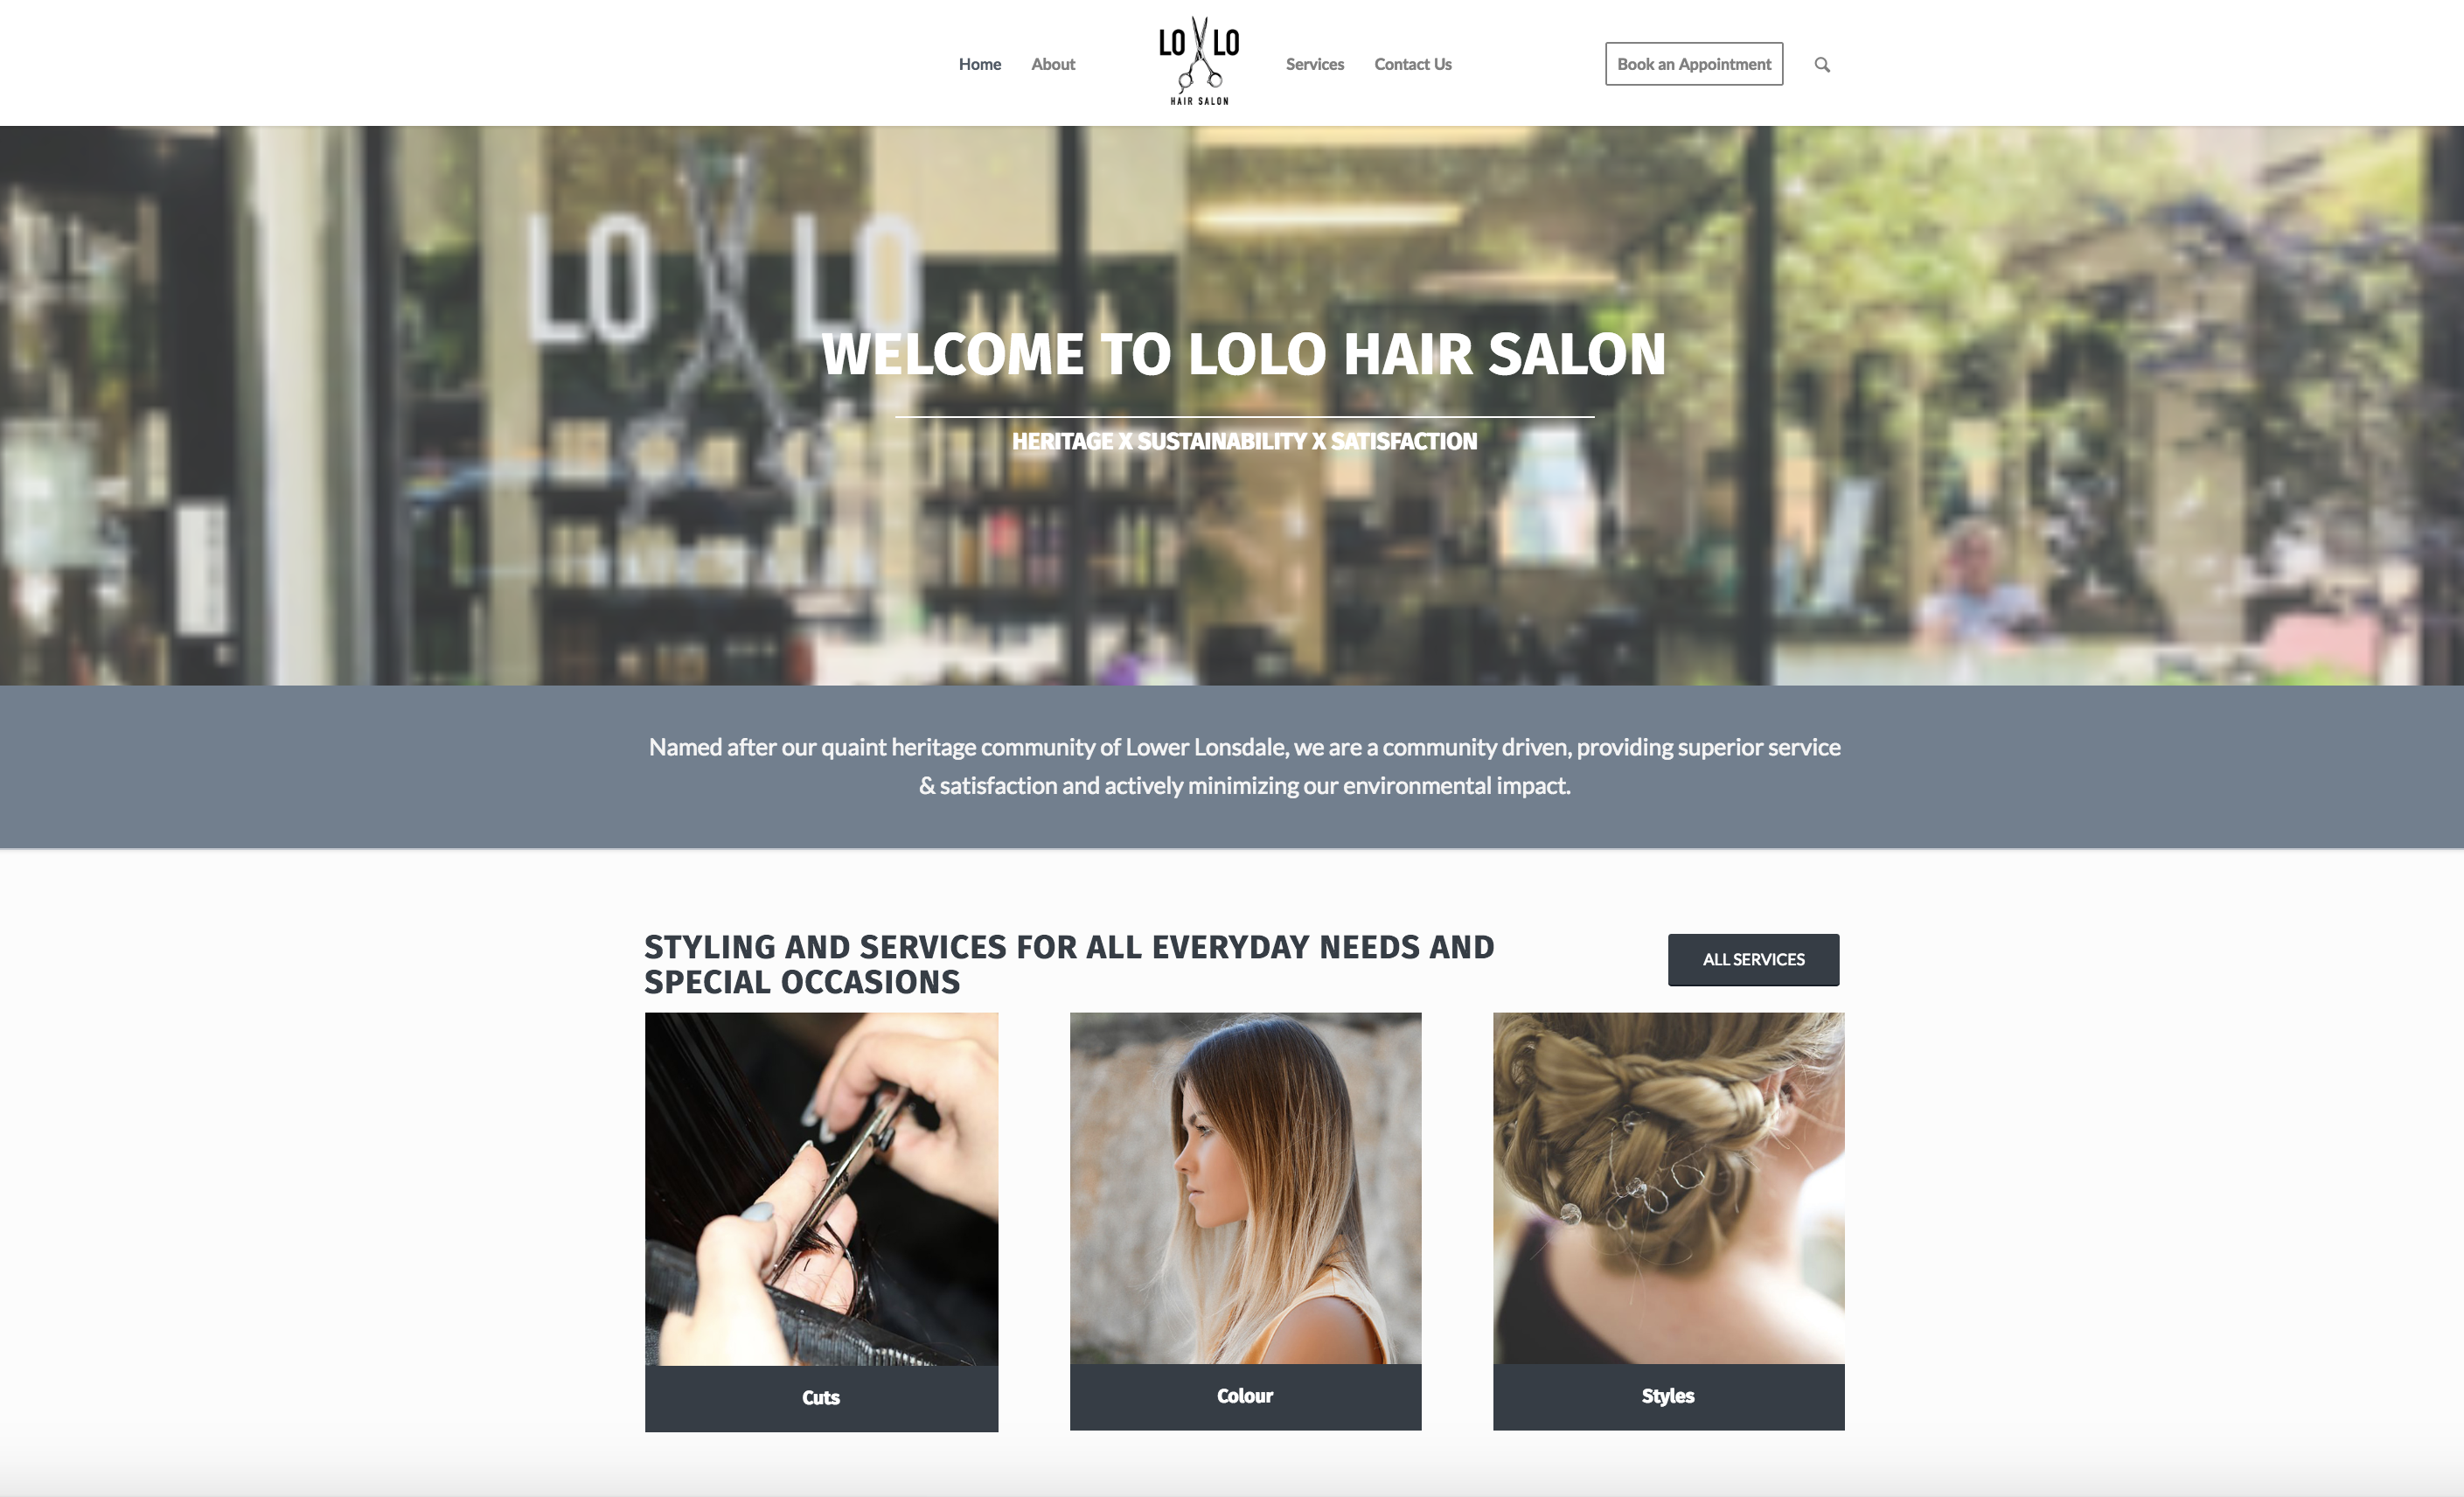 LoLo Hair Salon new home page